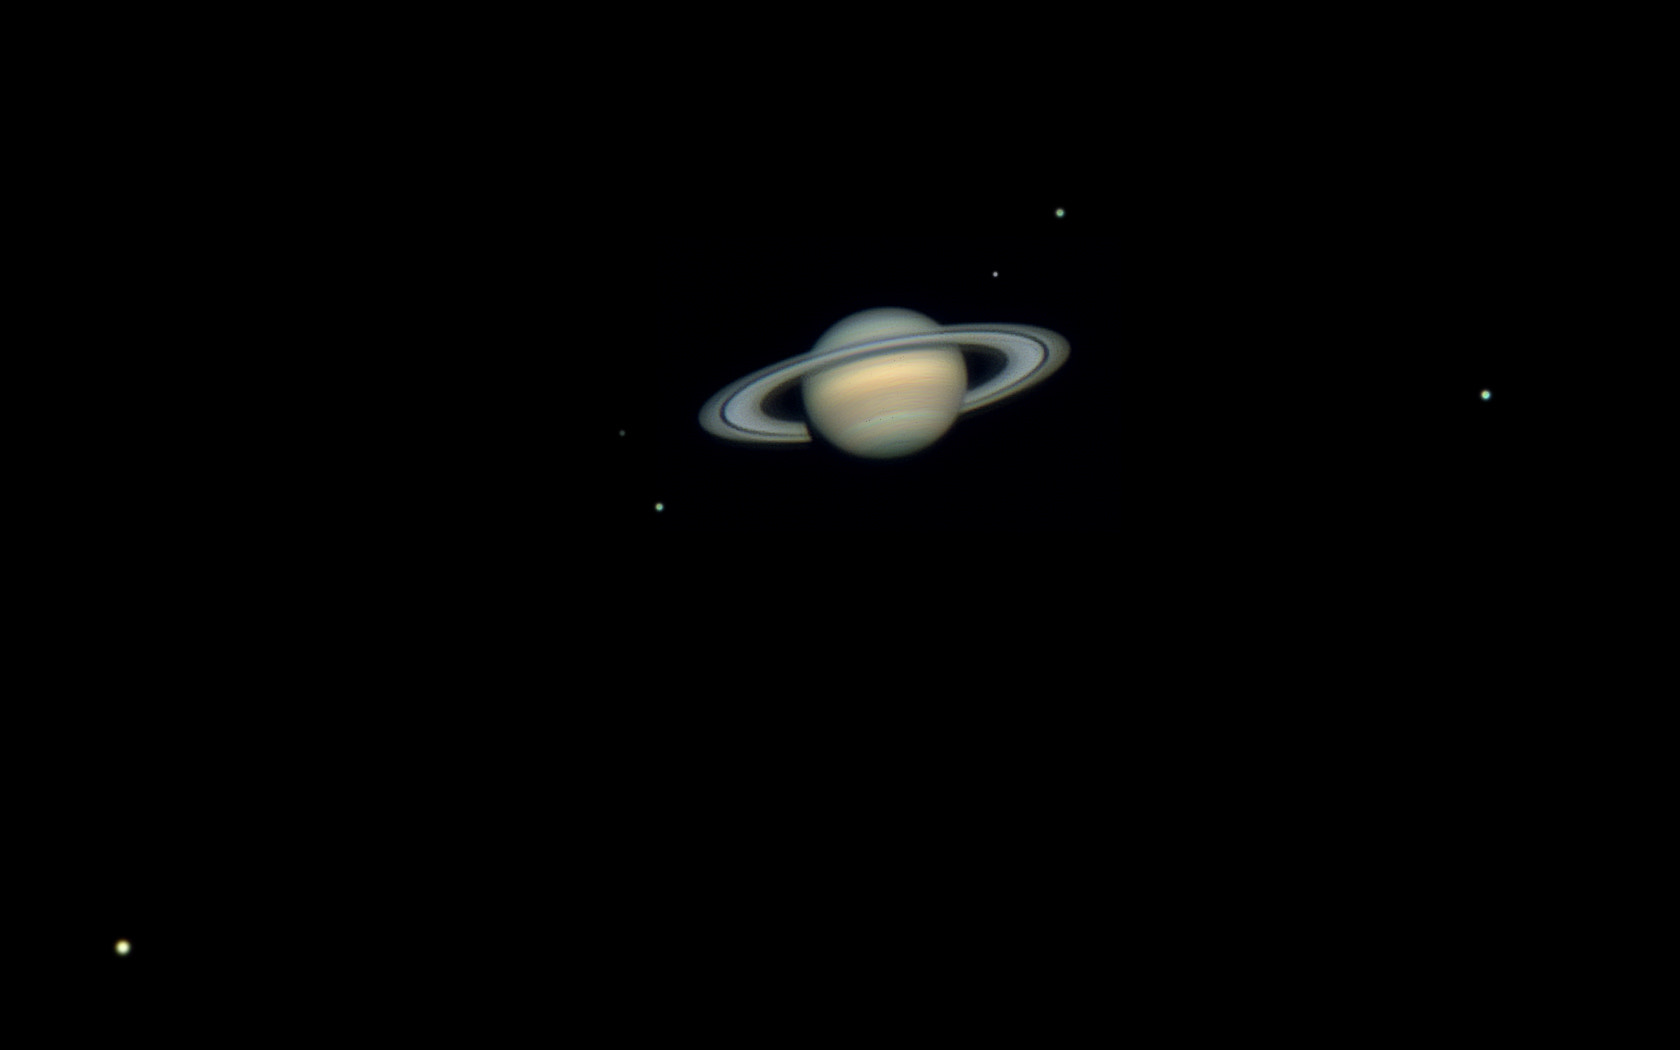 Photograph Six Saturn Moons by Rafael Defavari on 500px